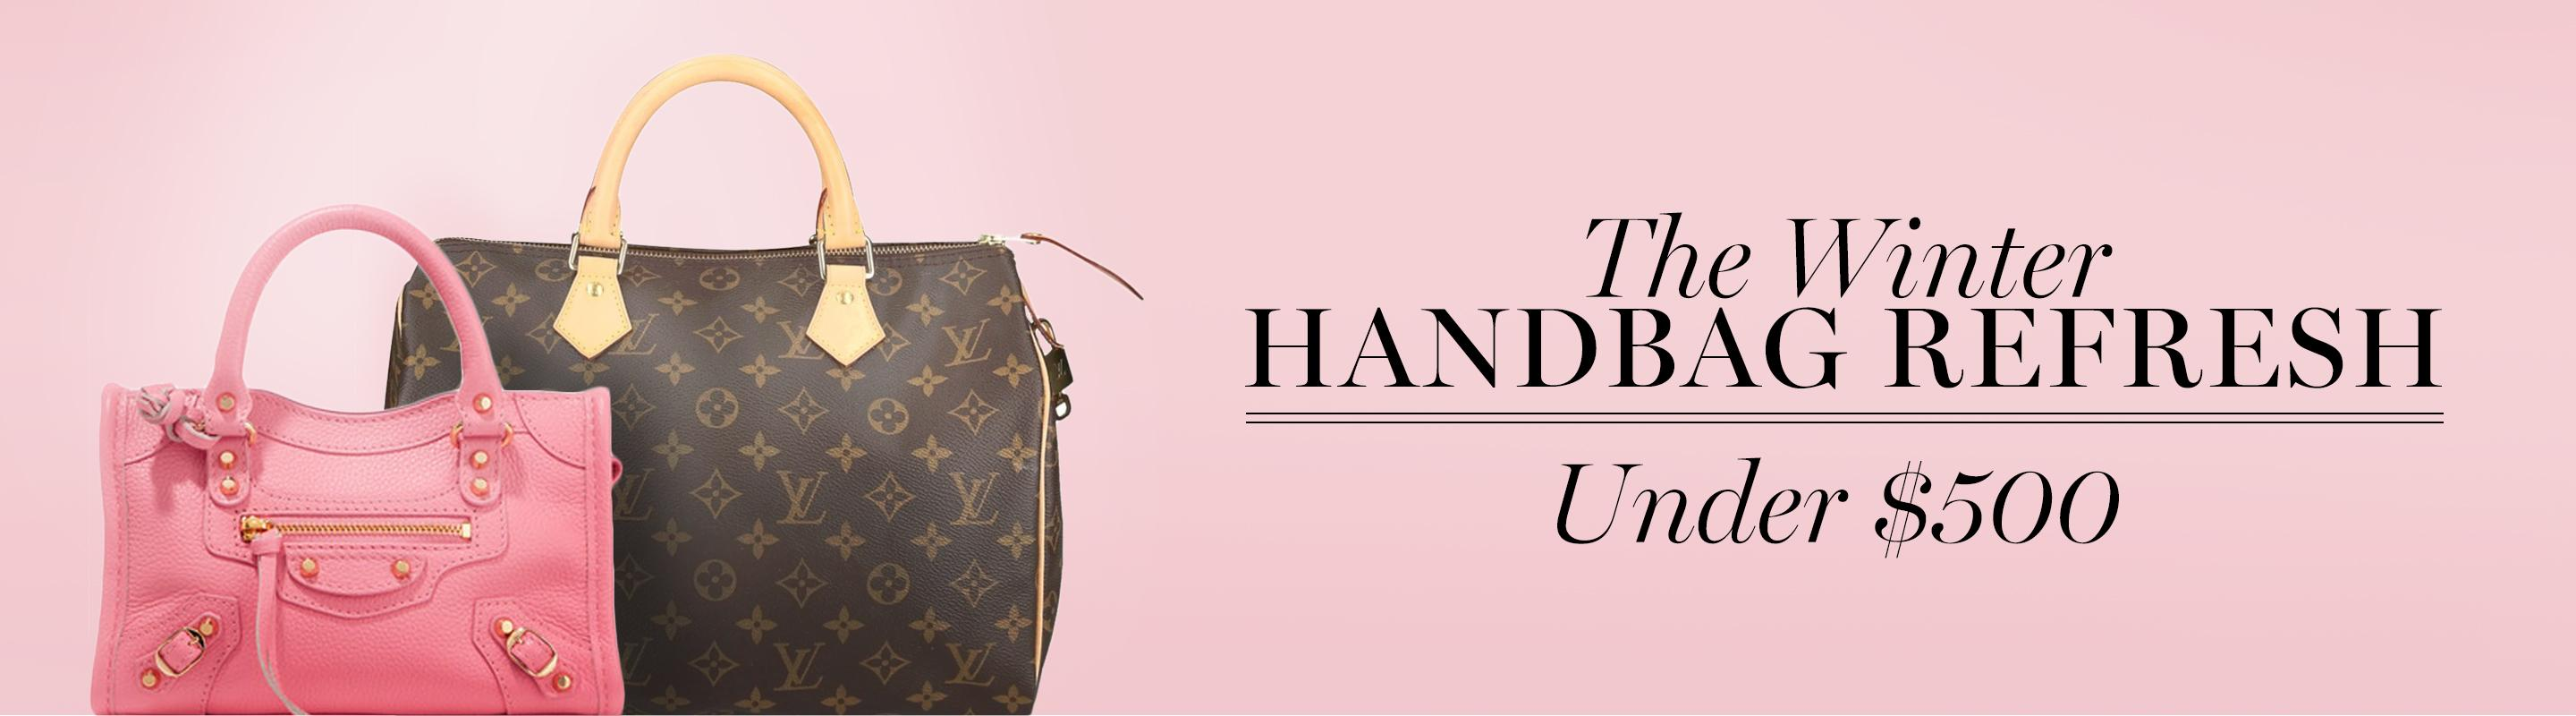 Bags Under $500